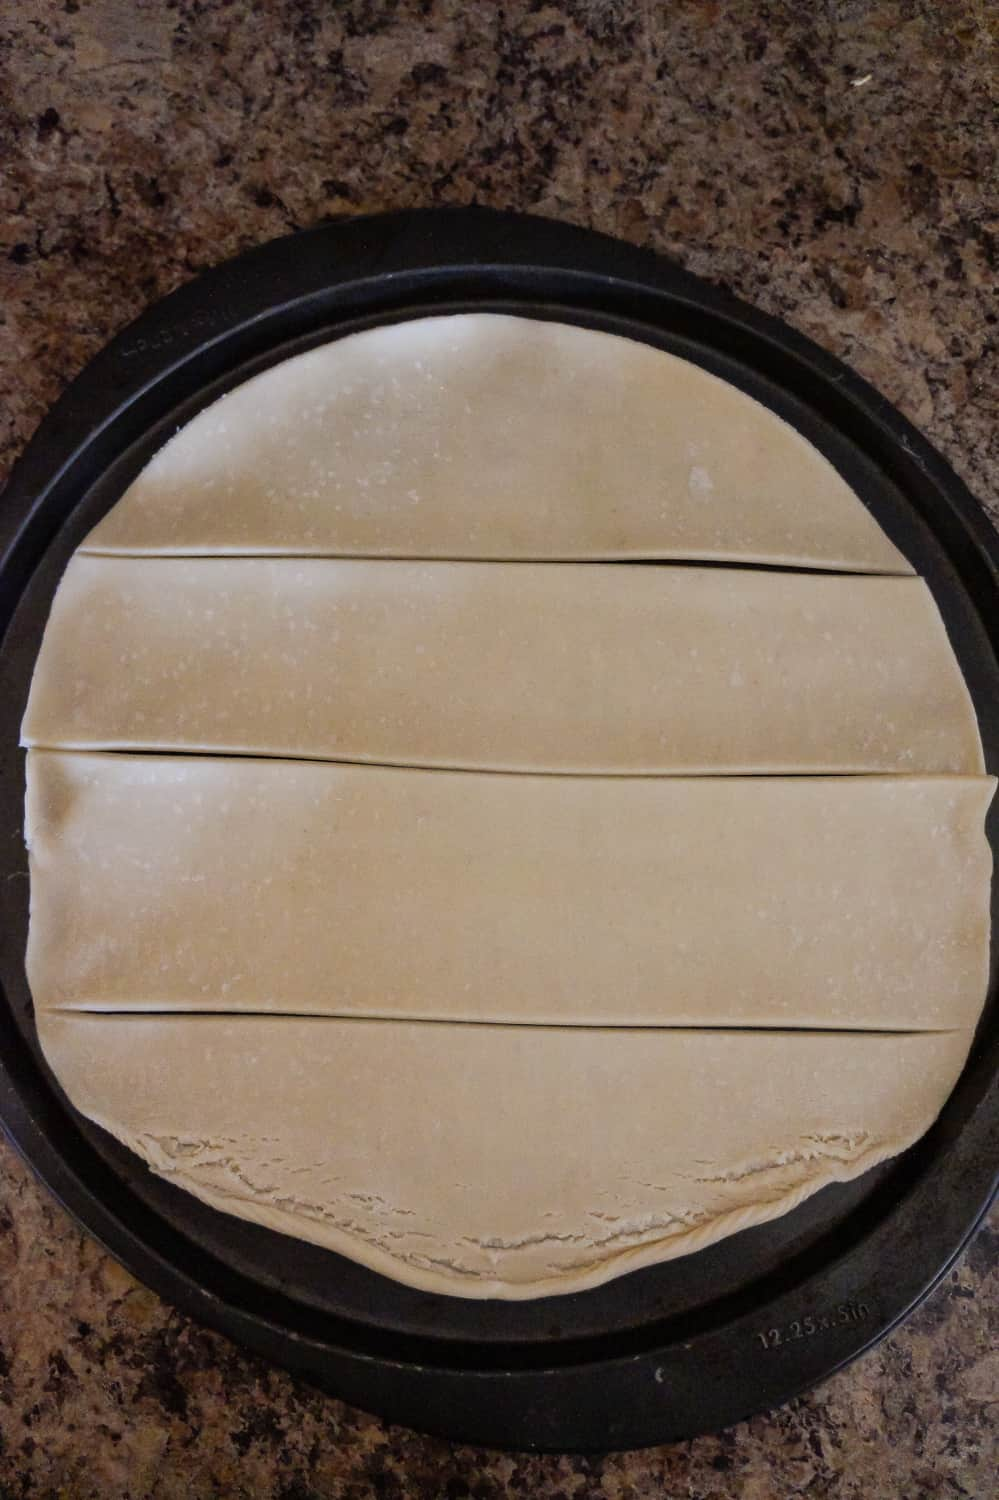 Pillsbury pie crust dough cut into four wide strips